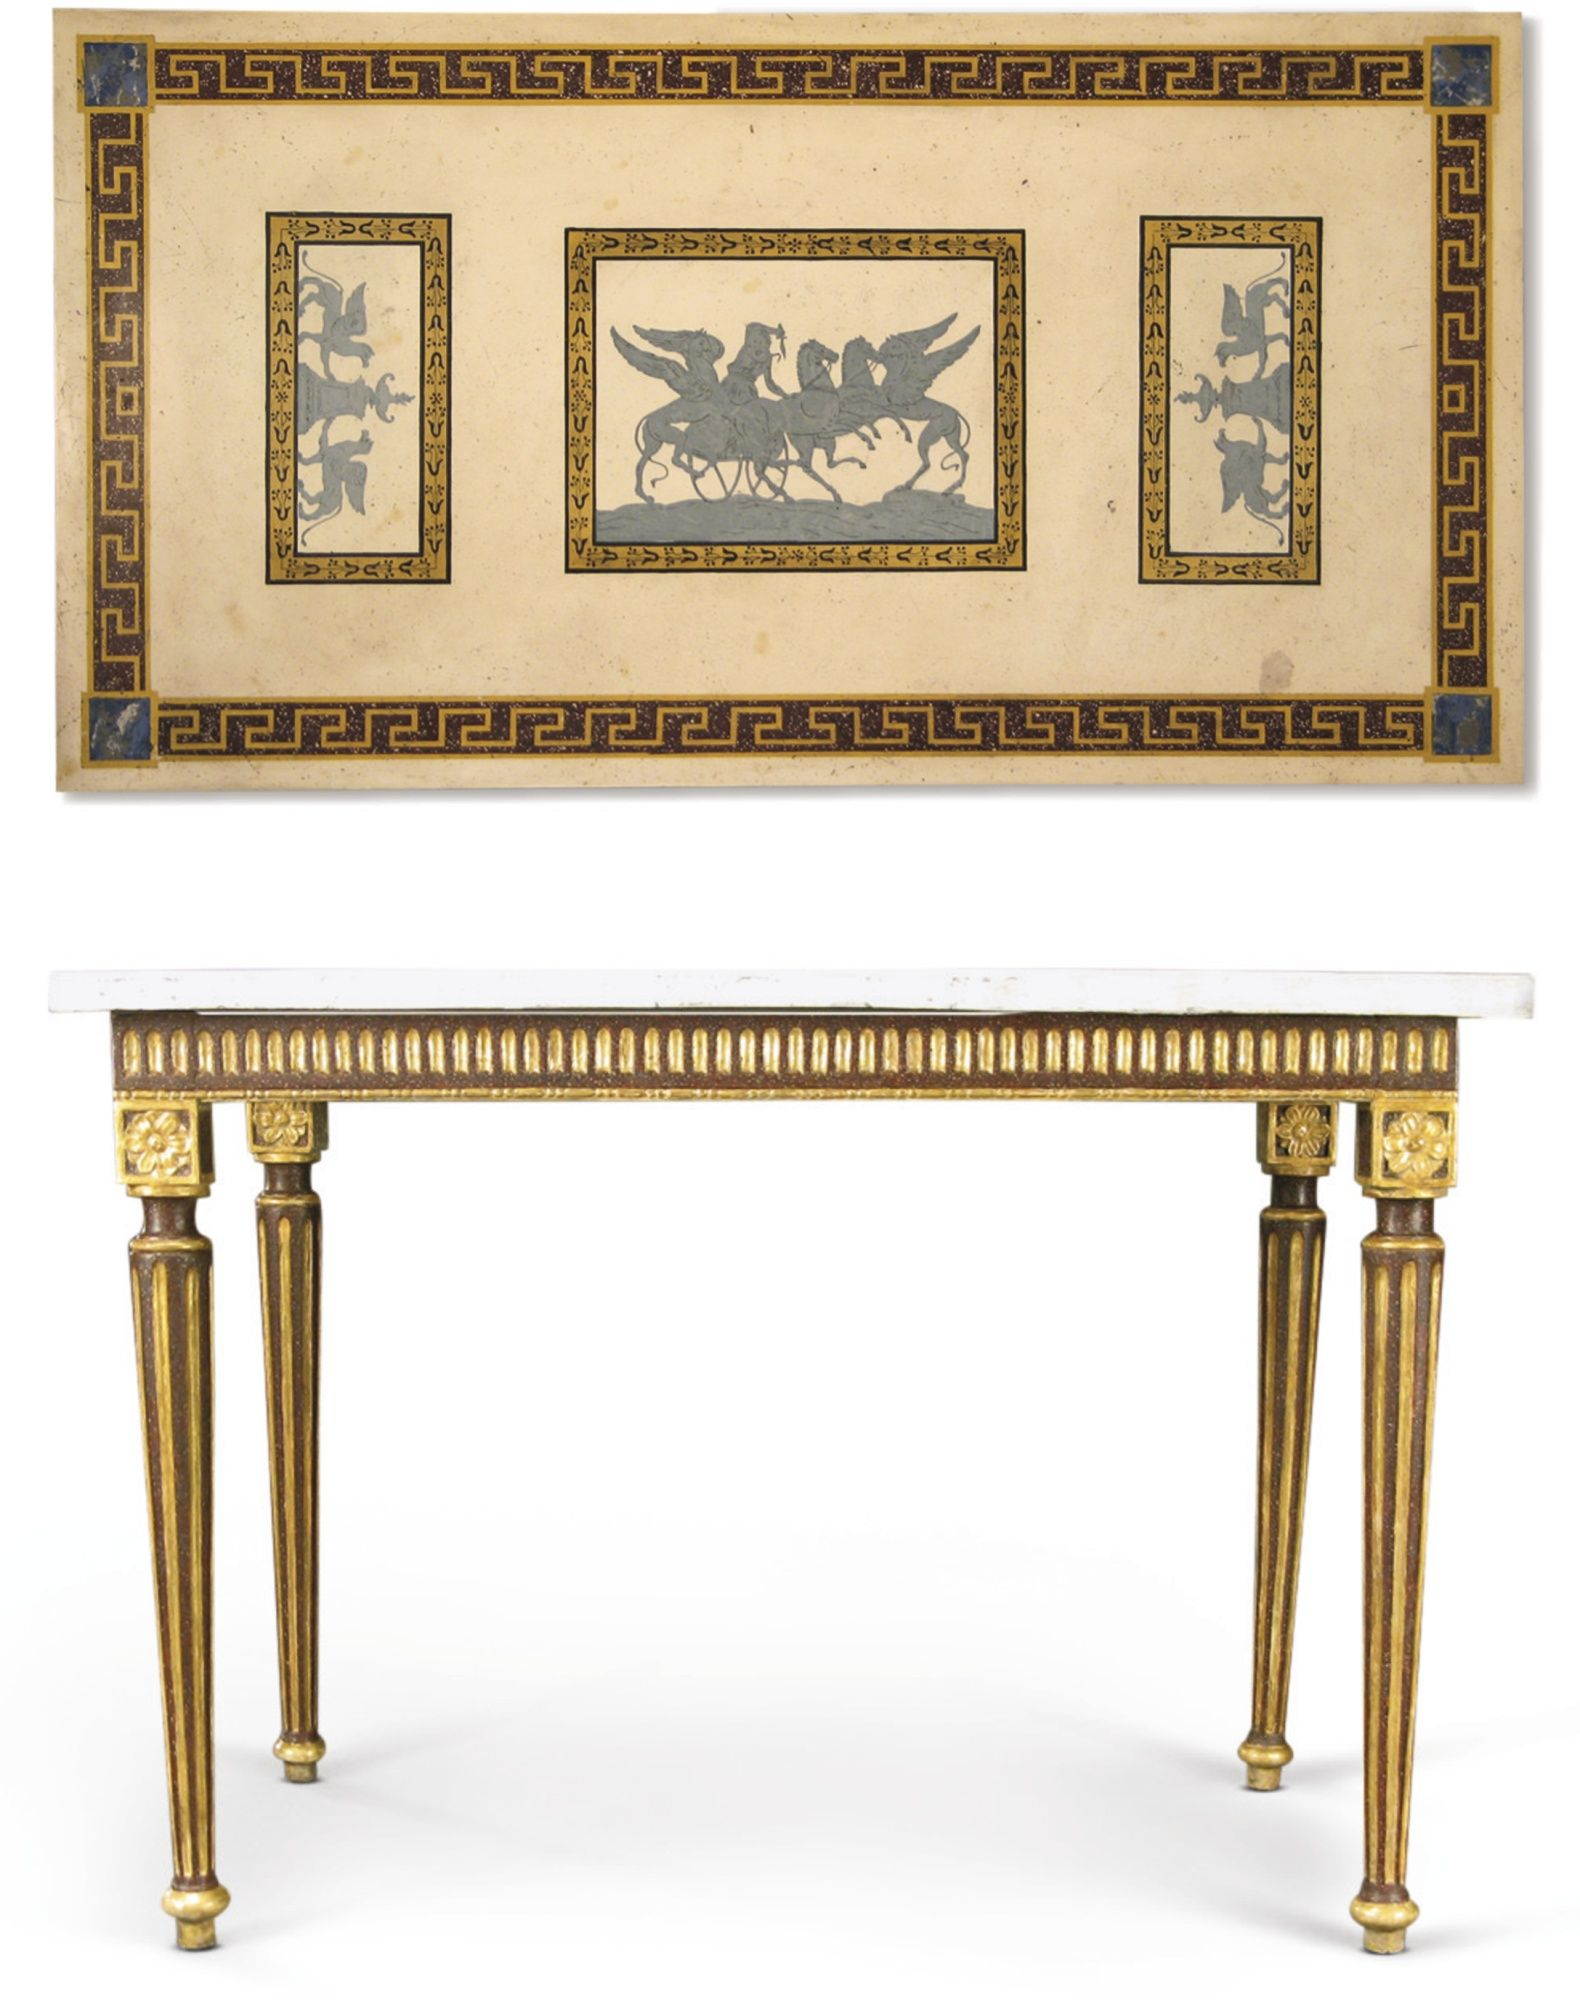 A GUSTAV IV SWEDISH NEOCLASSICAL FAUX PORPHYRY PAINTED PARCEL